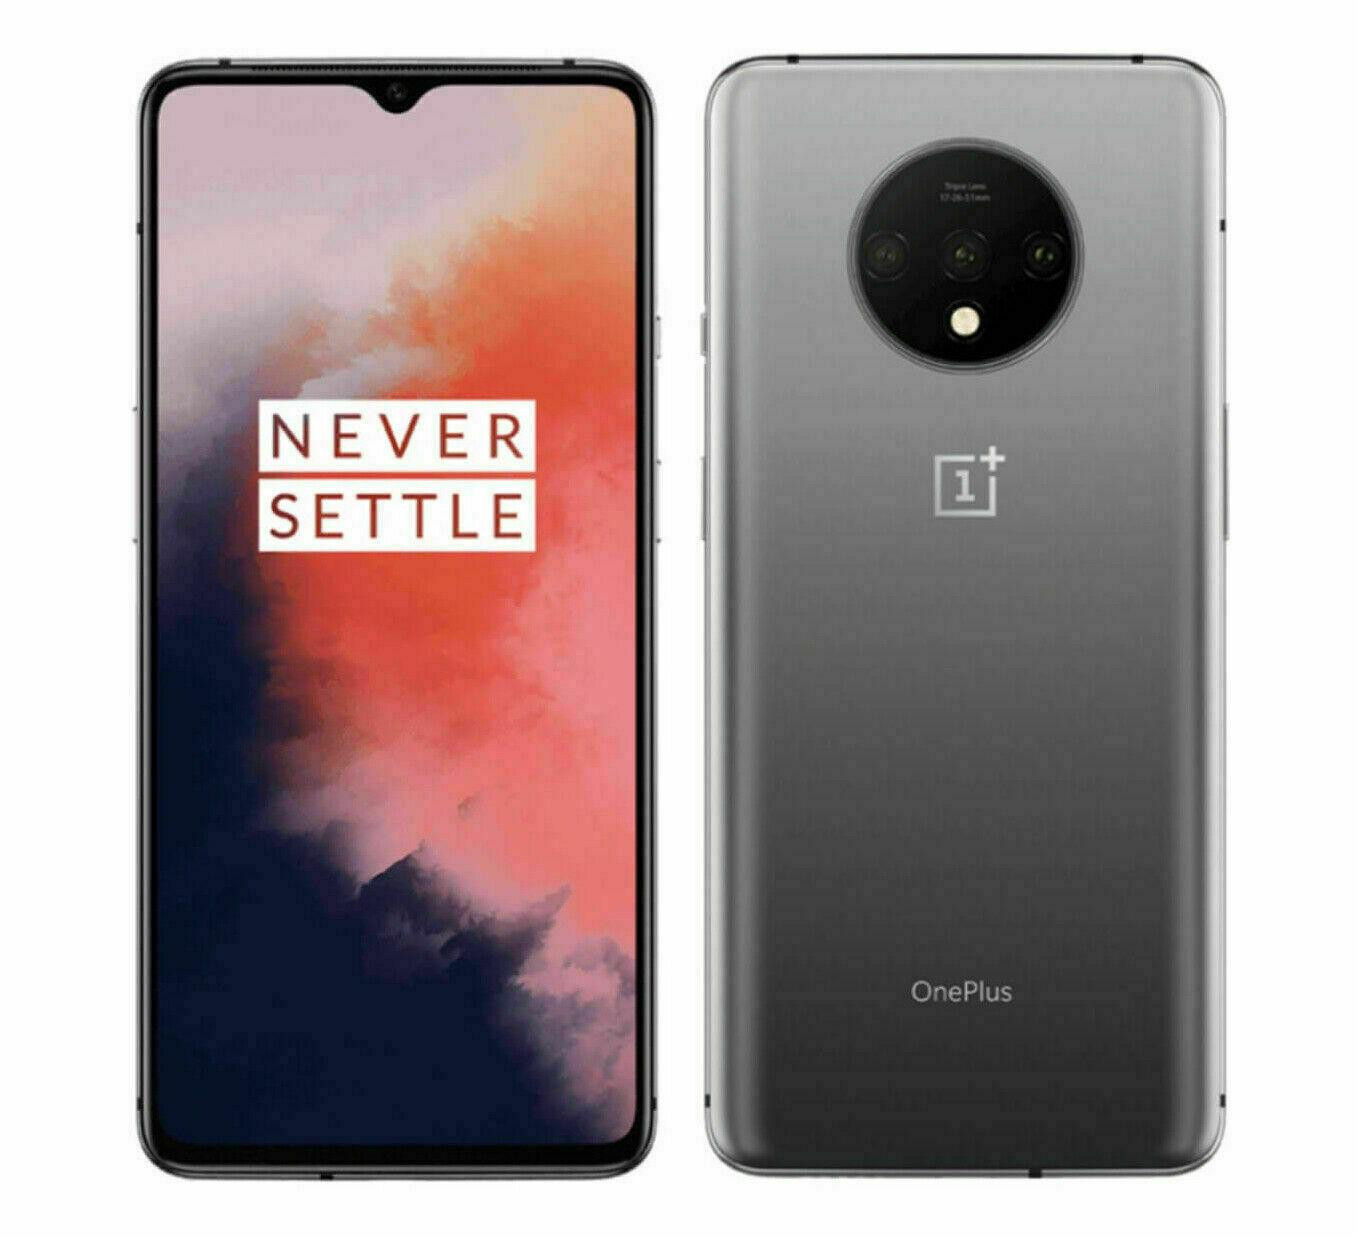 OnePlus 7T - 128GB - Frosted Silver 48MP, 128GB, 8GB Ram Unlocked OB